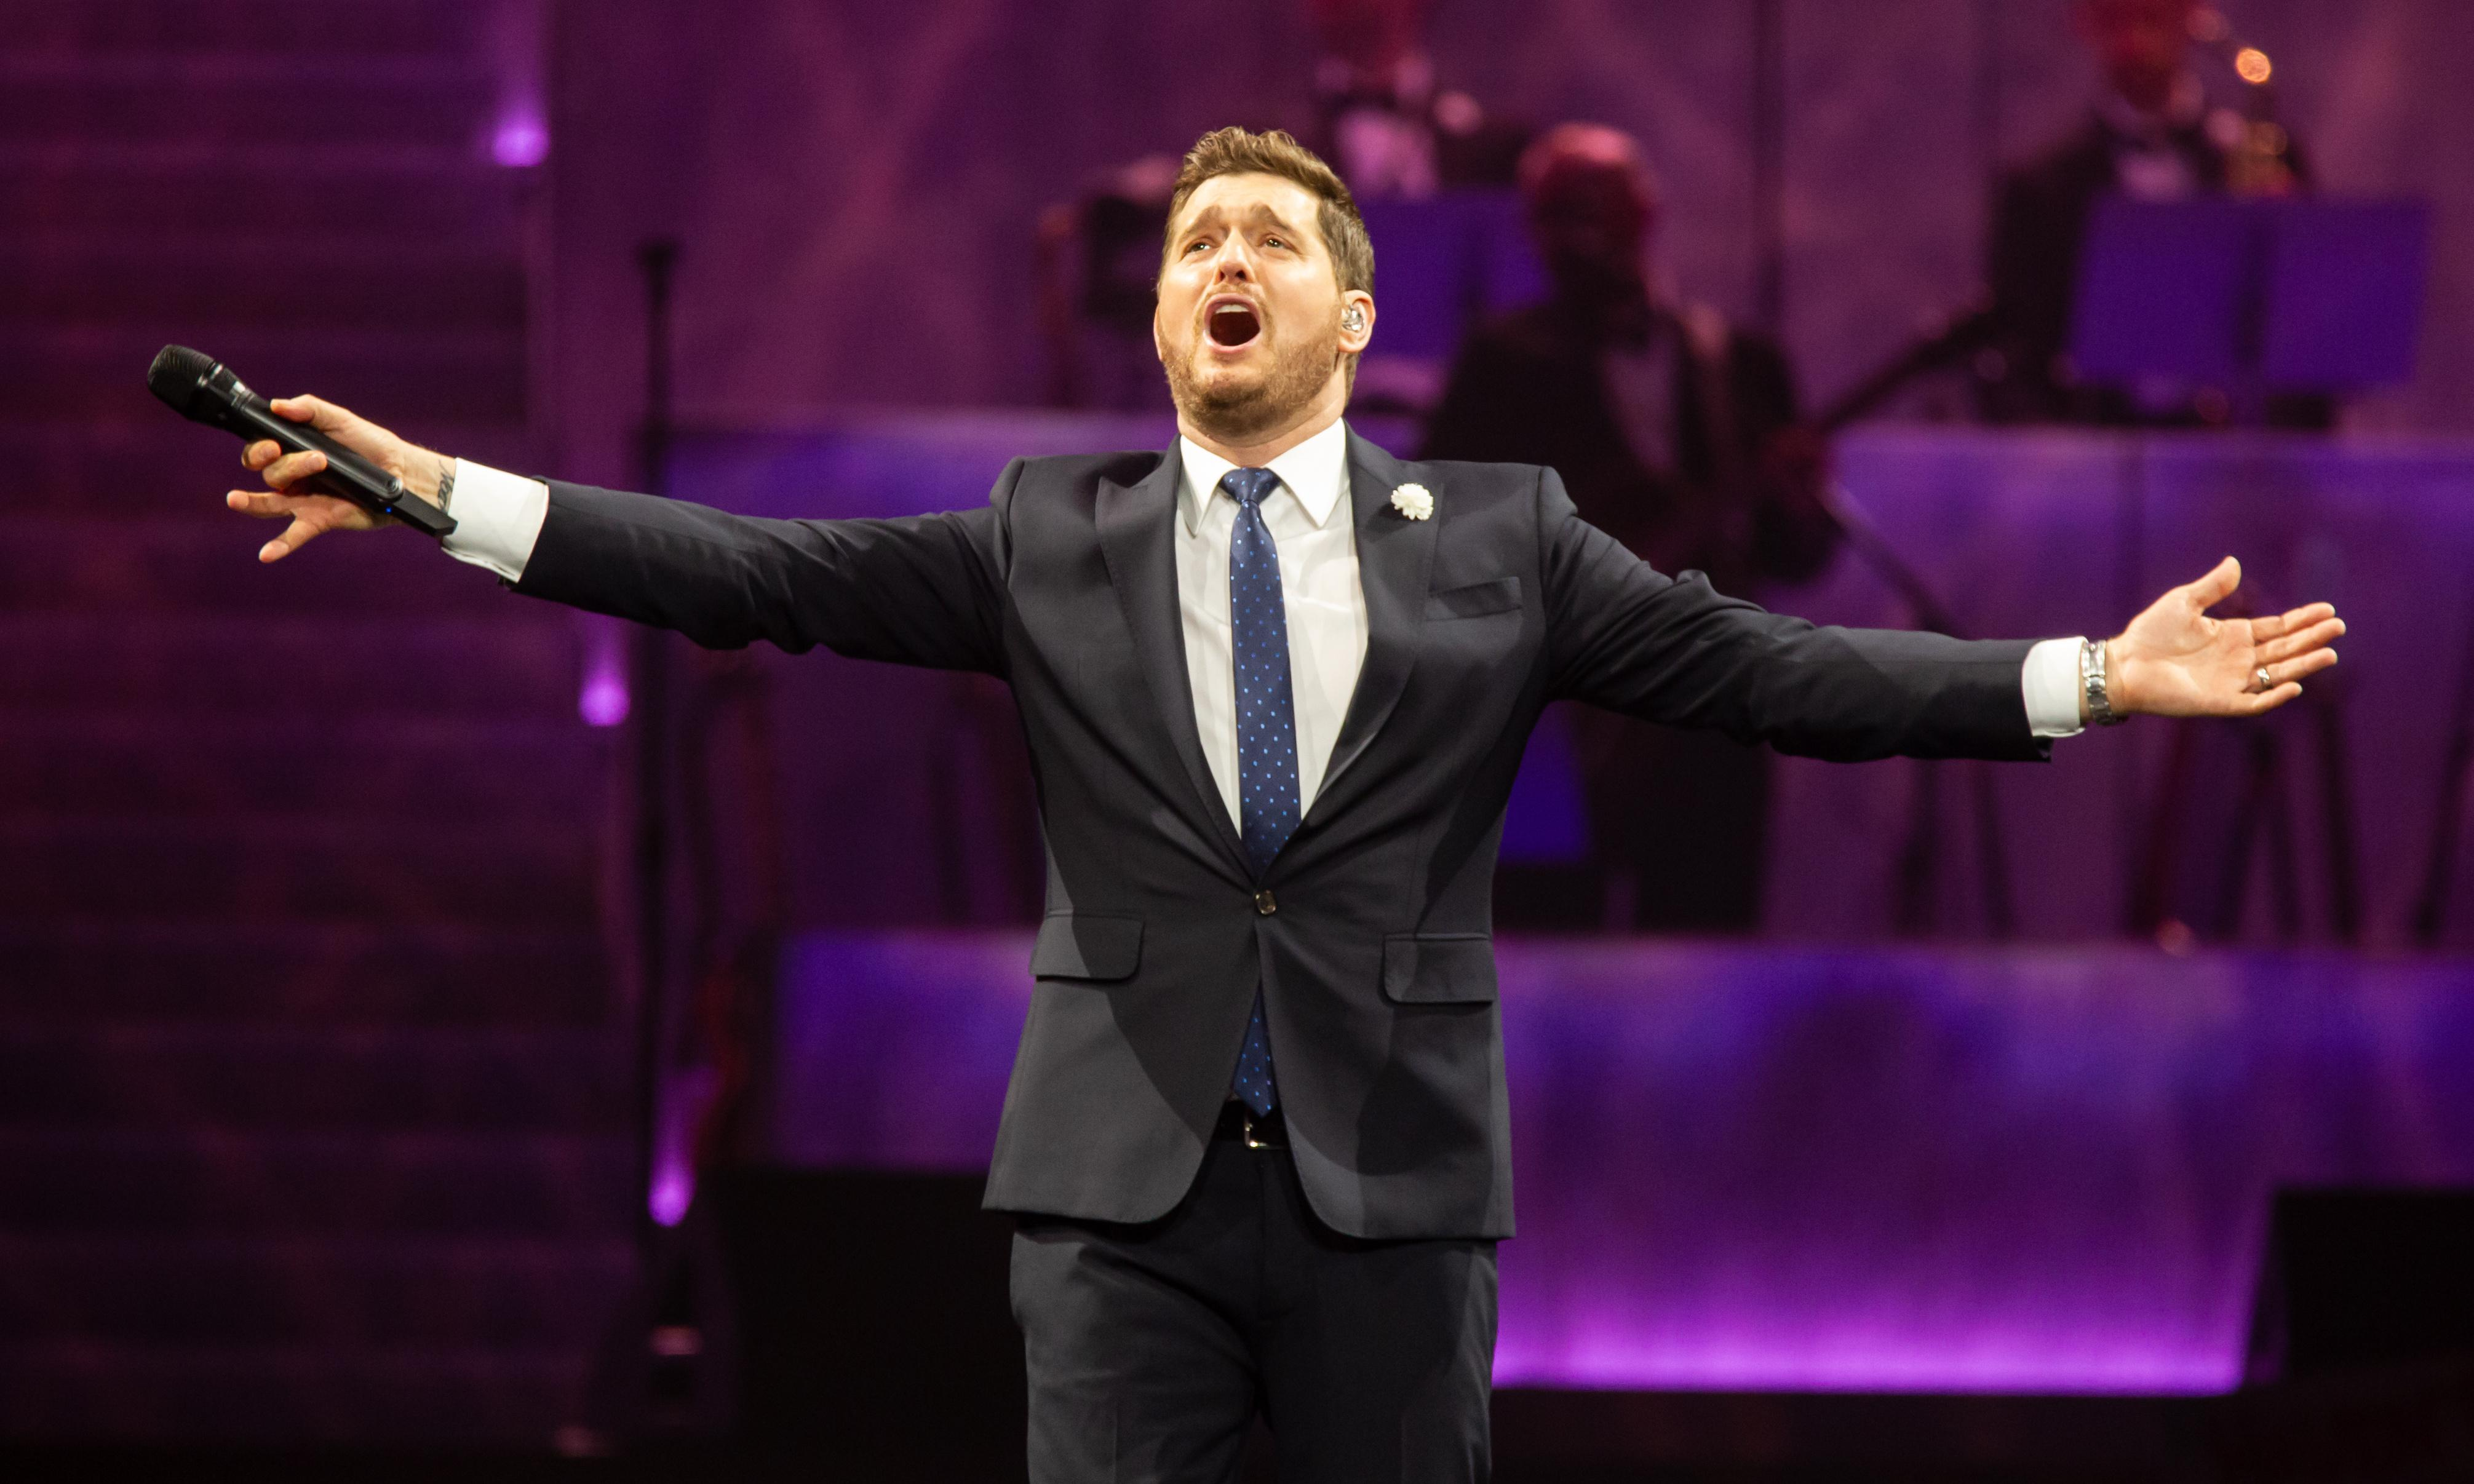 Michael Bublé review – moving, hard-won hits from cheeky crooner